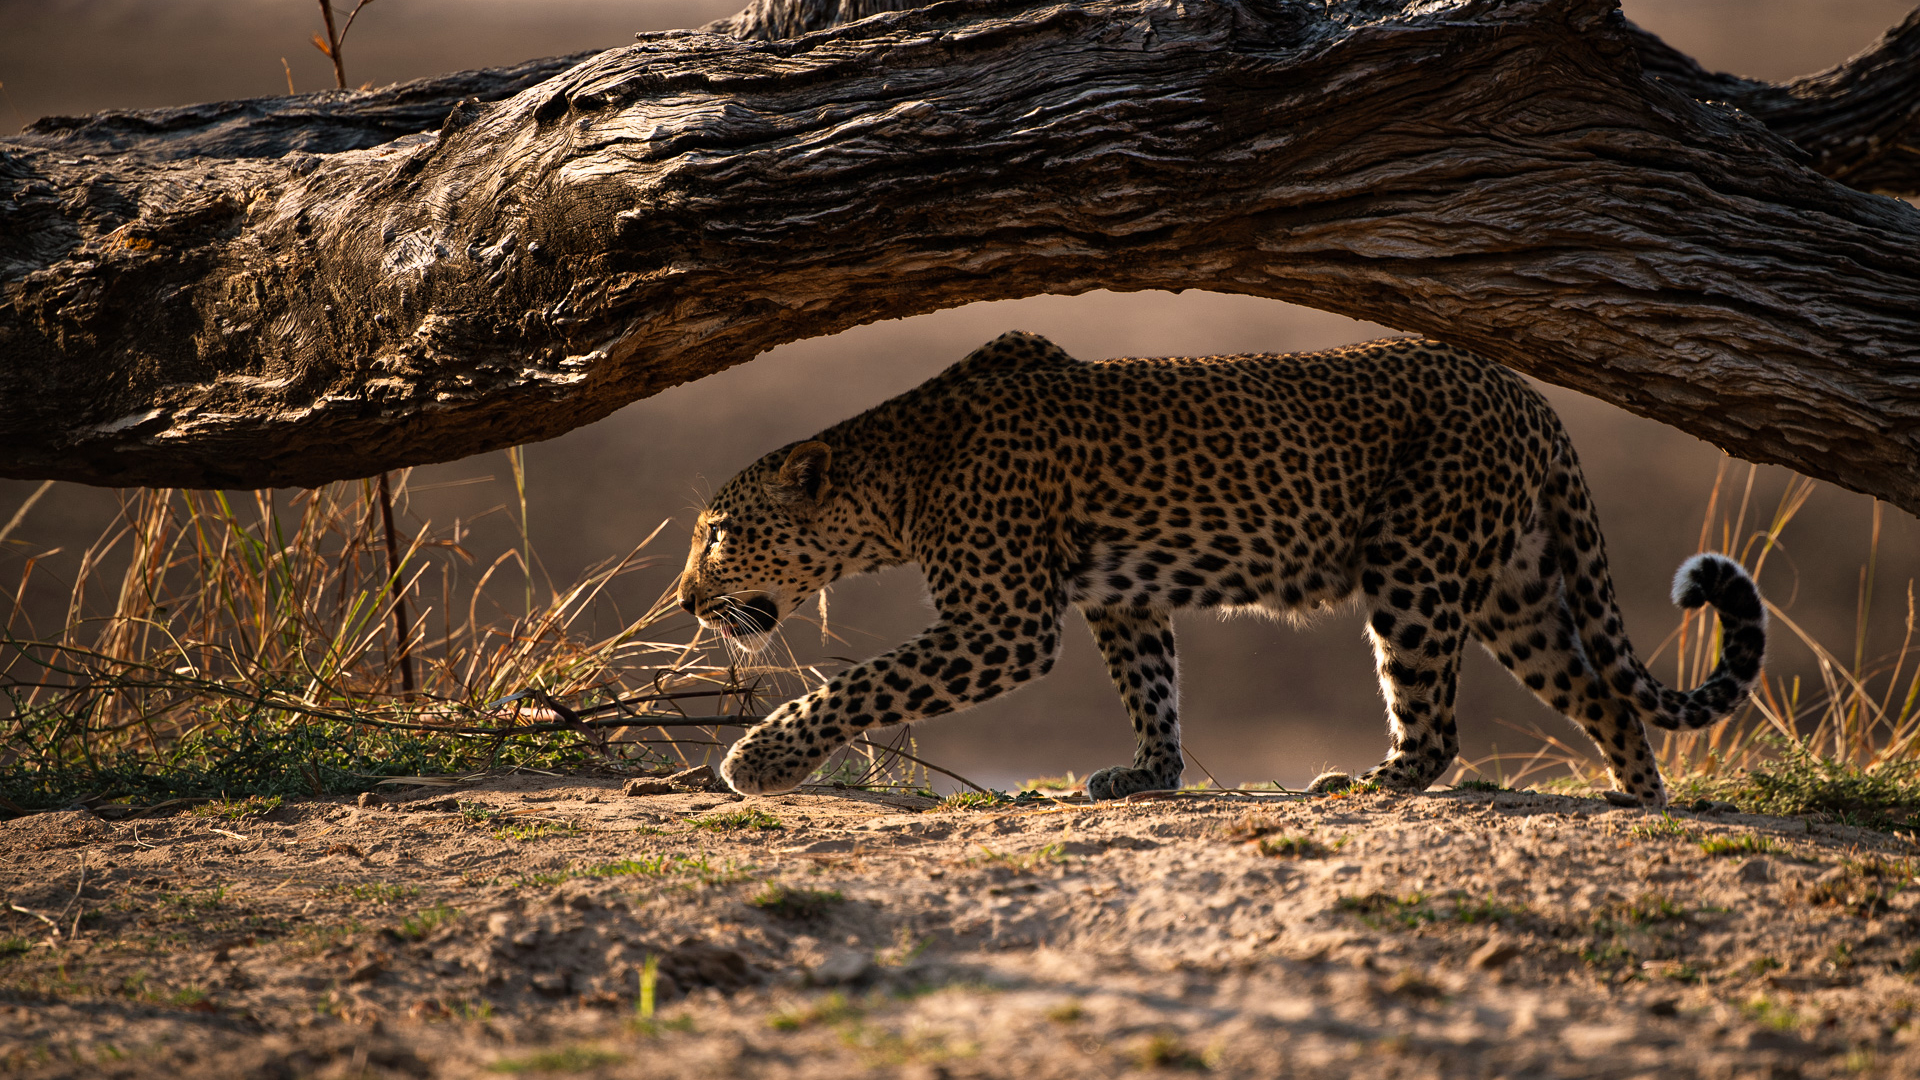 zambia wildlife leopard under branch